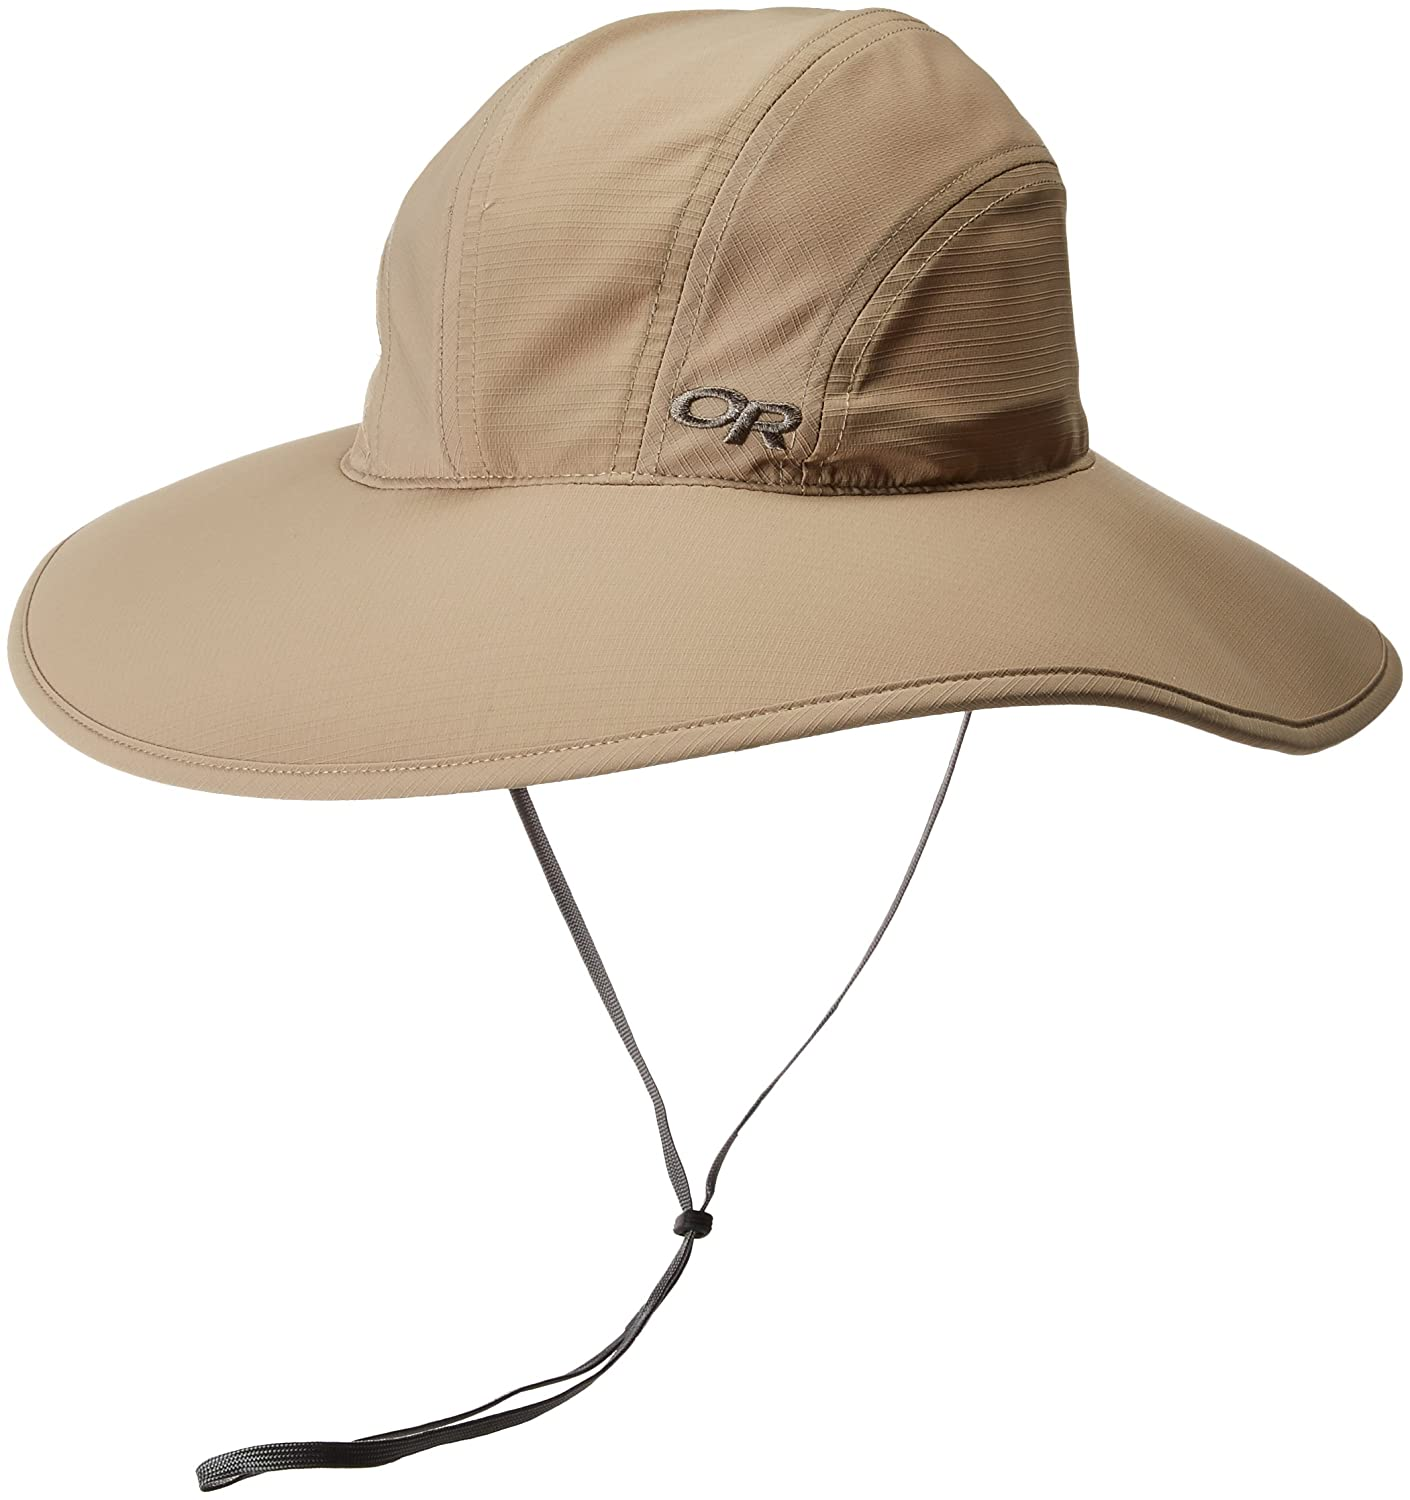 8deb4d4d Amazon.com: Outdoor Research Women's Oasis Sombrero: Clothing